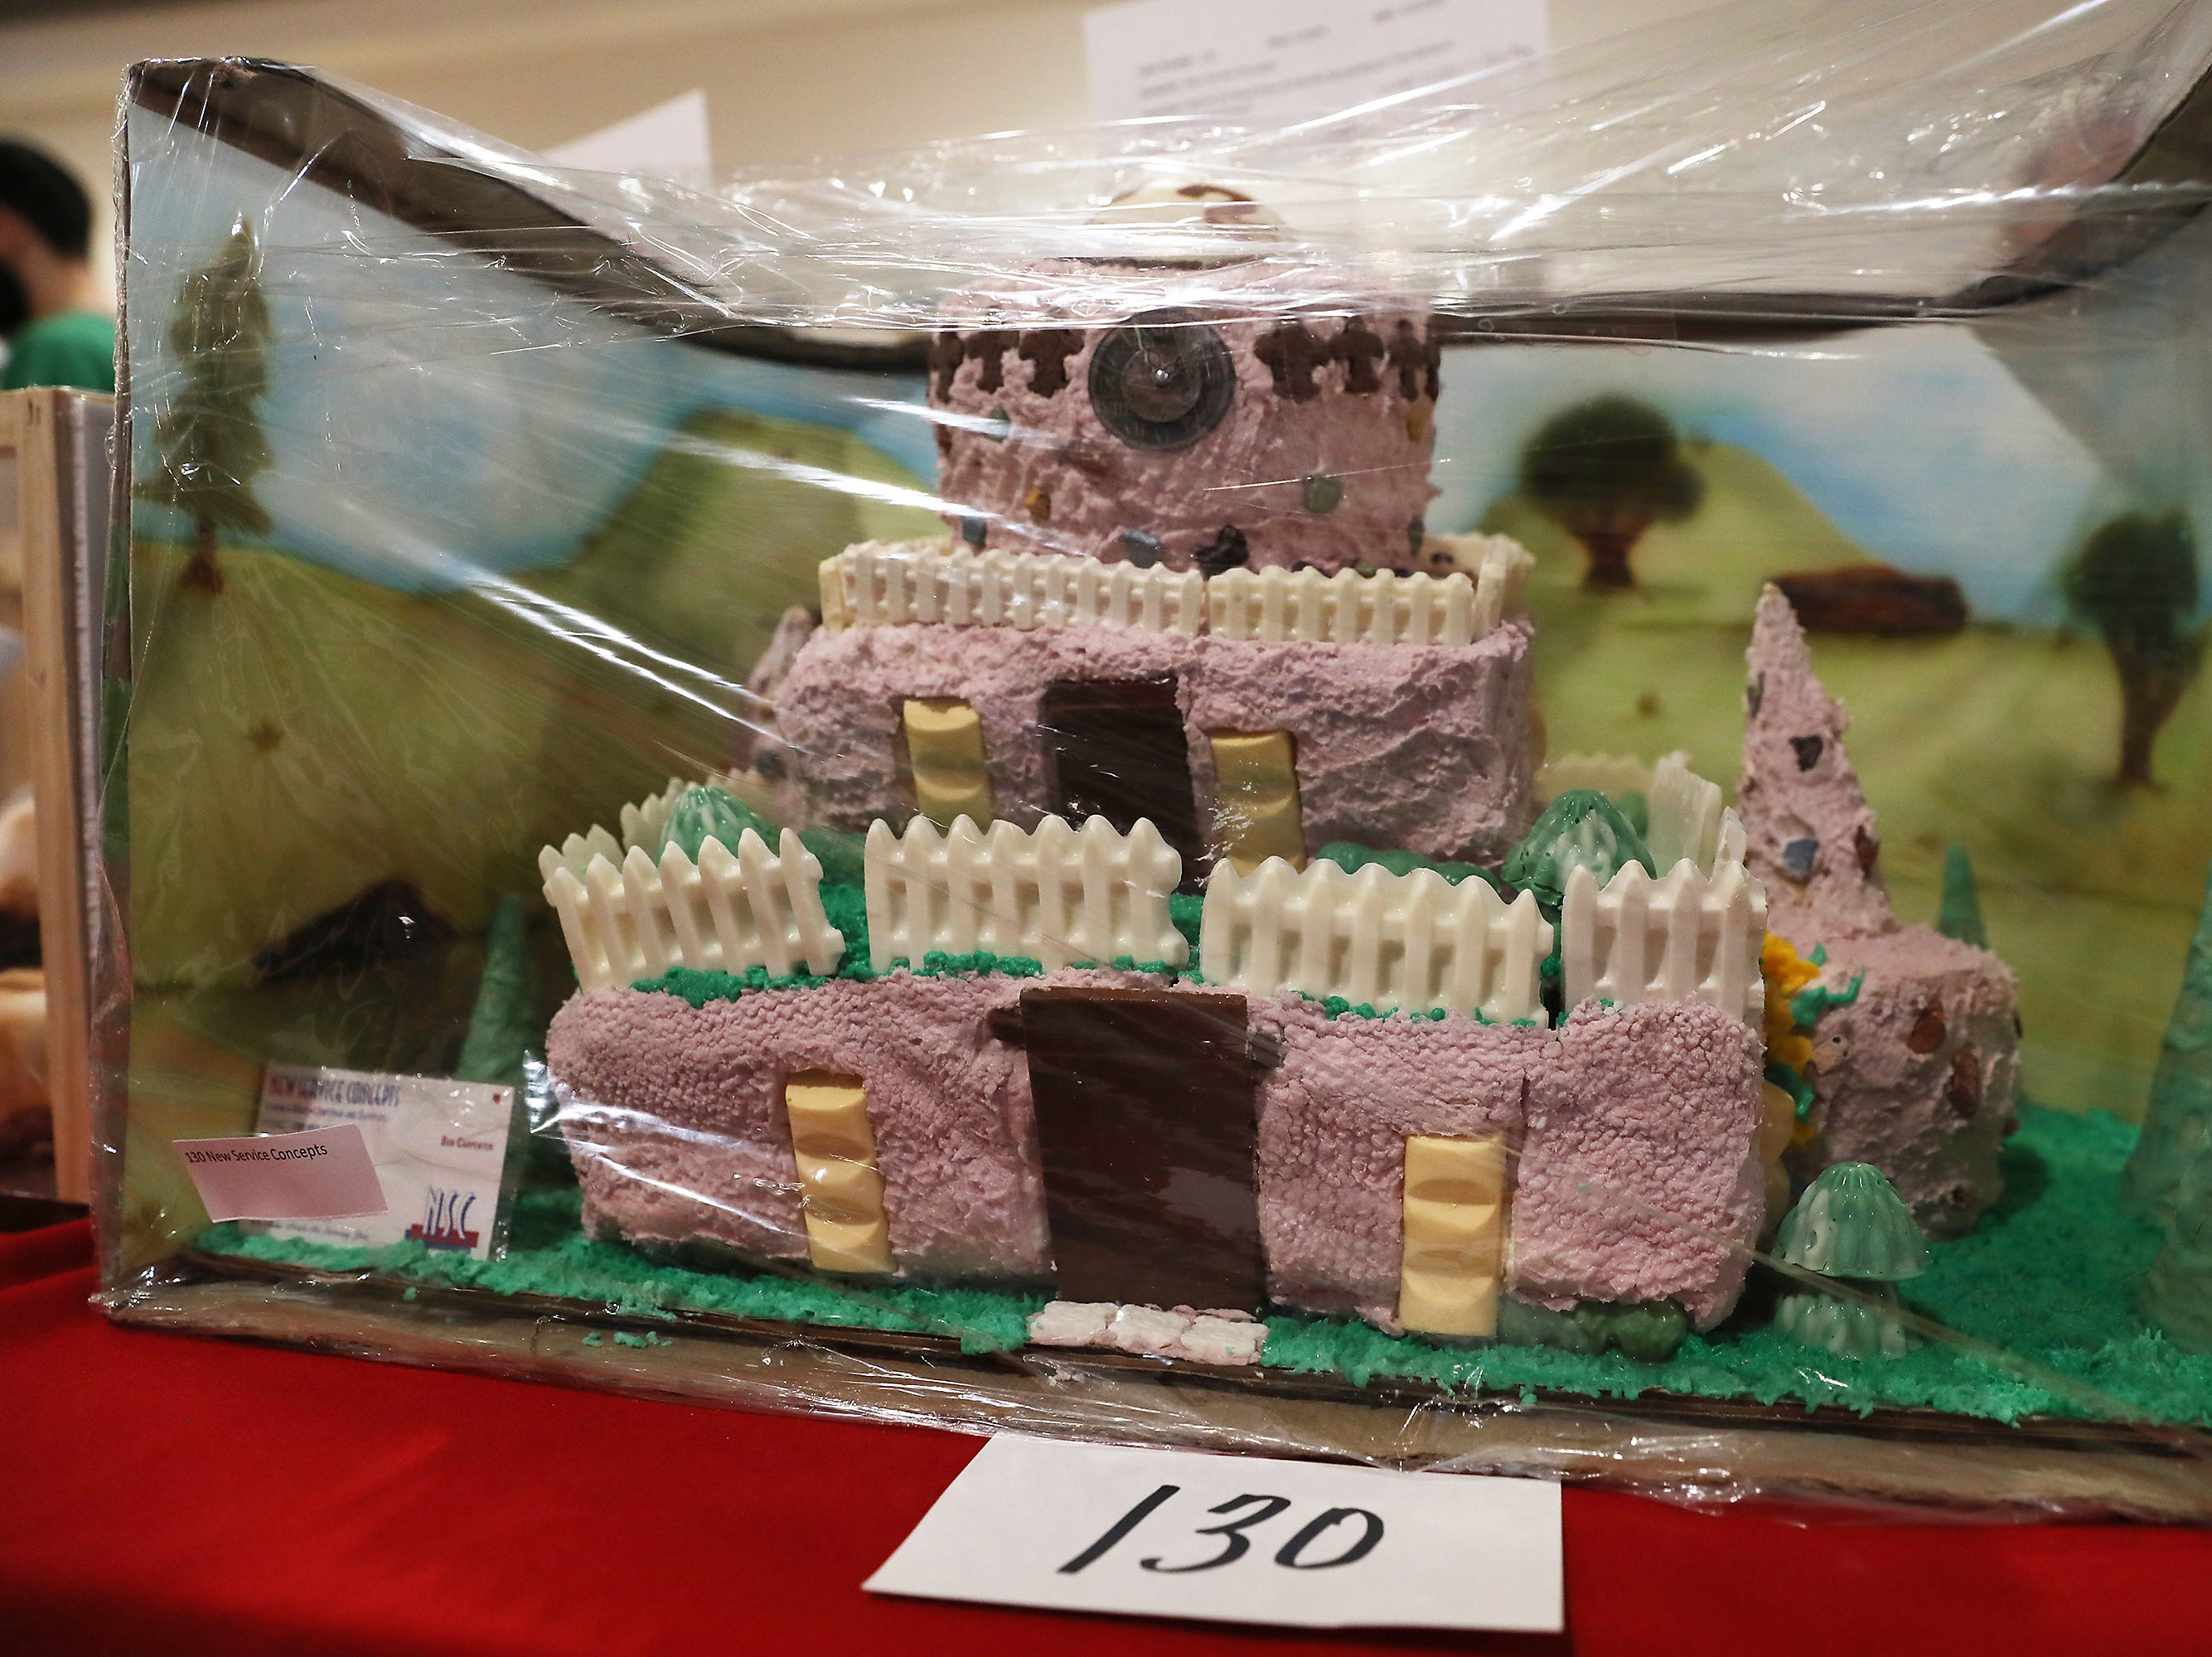 2:30 P.M. Thursday cake 130 New Service Concepts - Stihl weed eater and leaf blower; $390